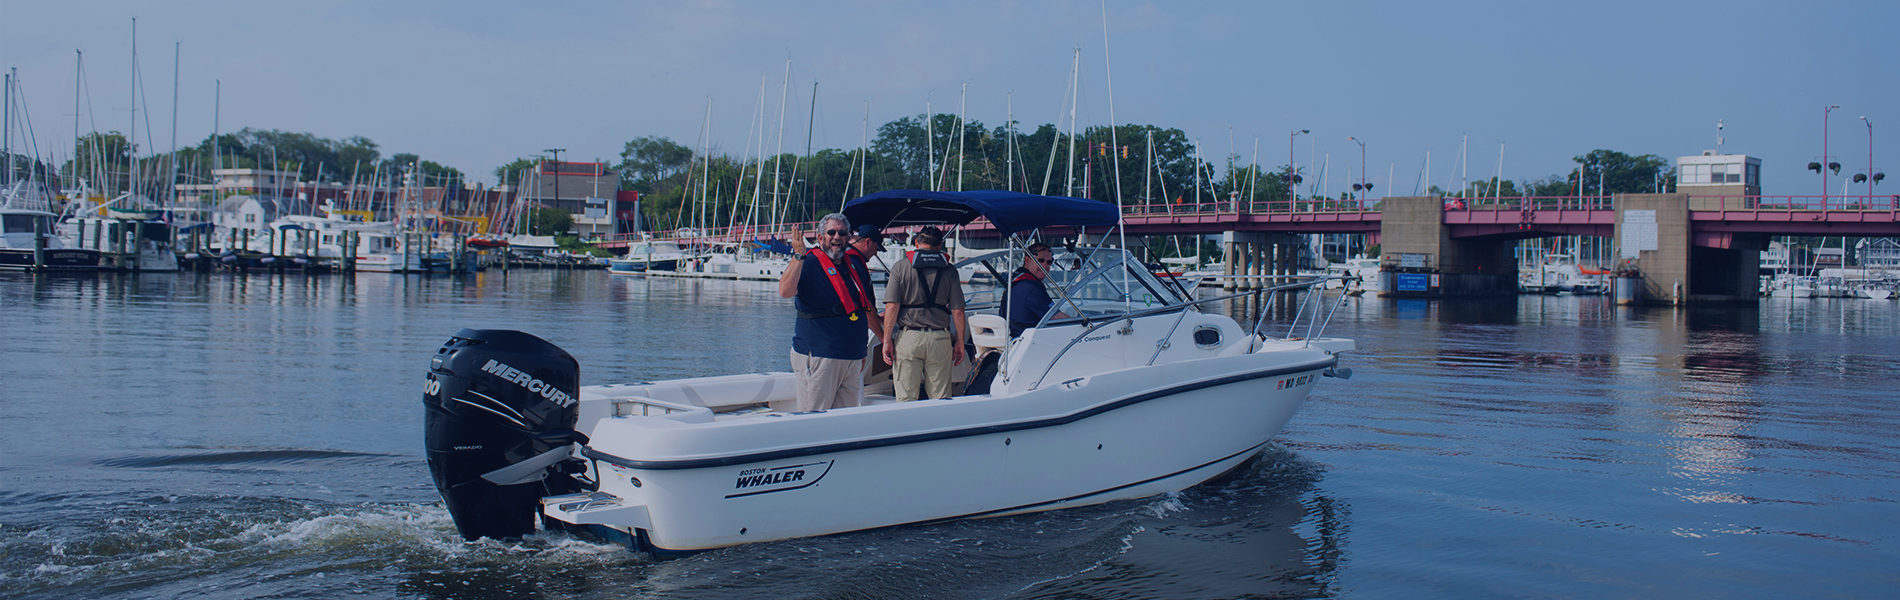 BoatUS Foundation for Boating Safety and Clean Water